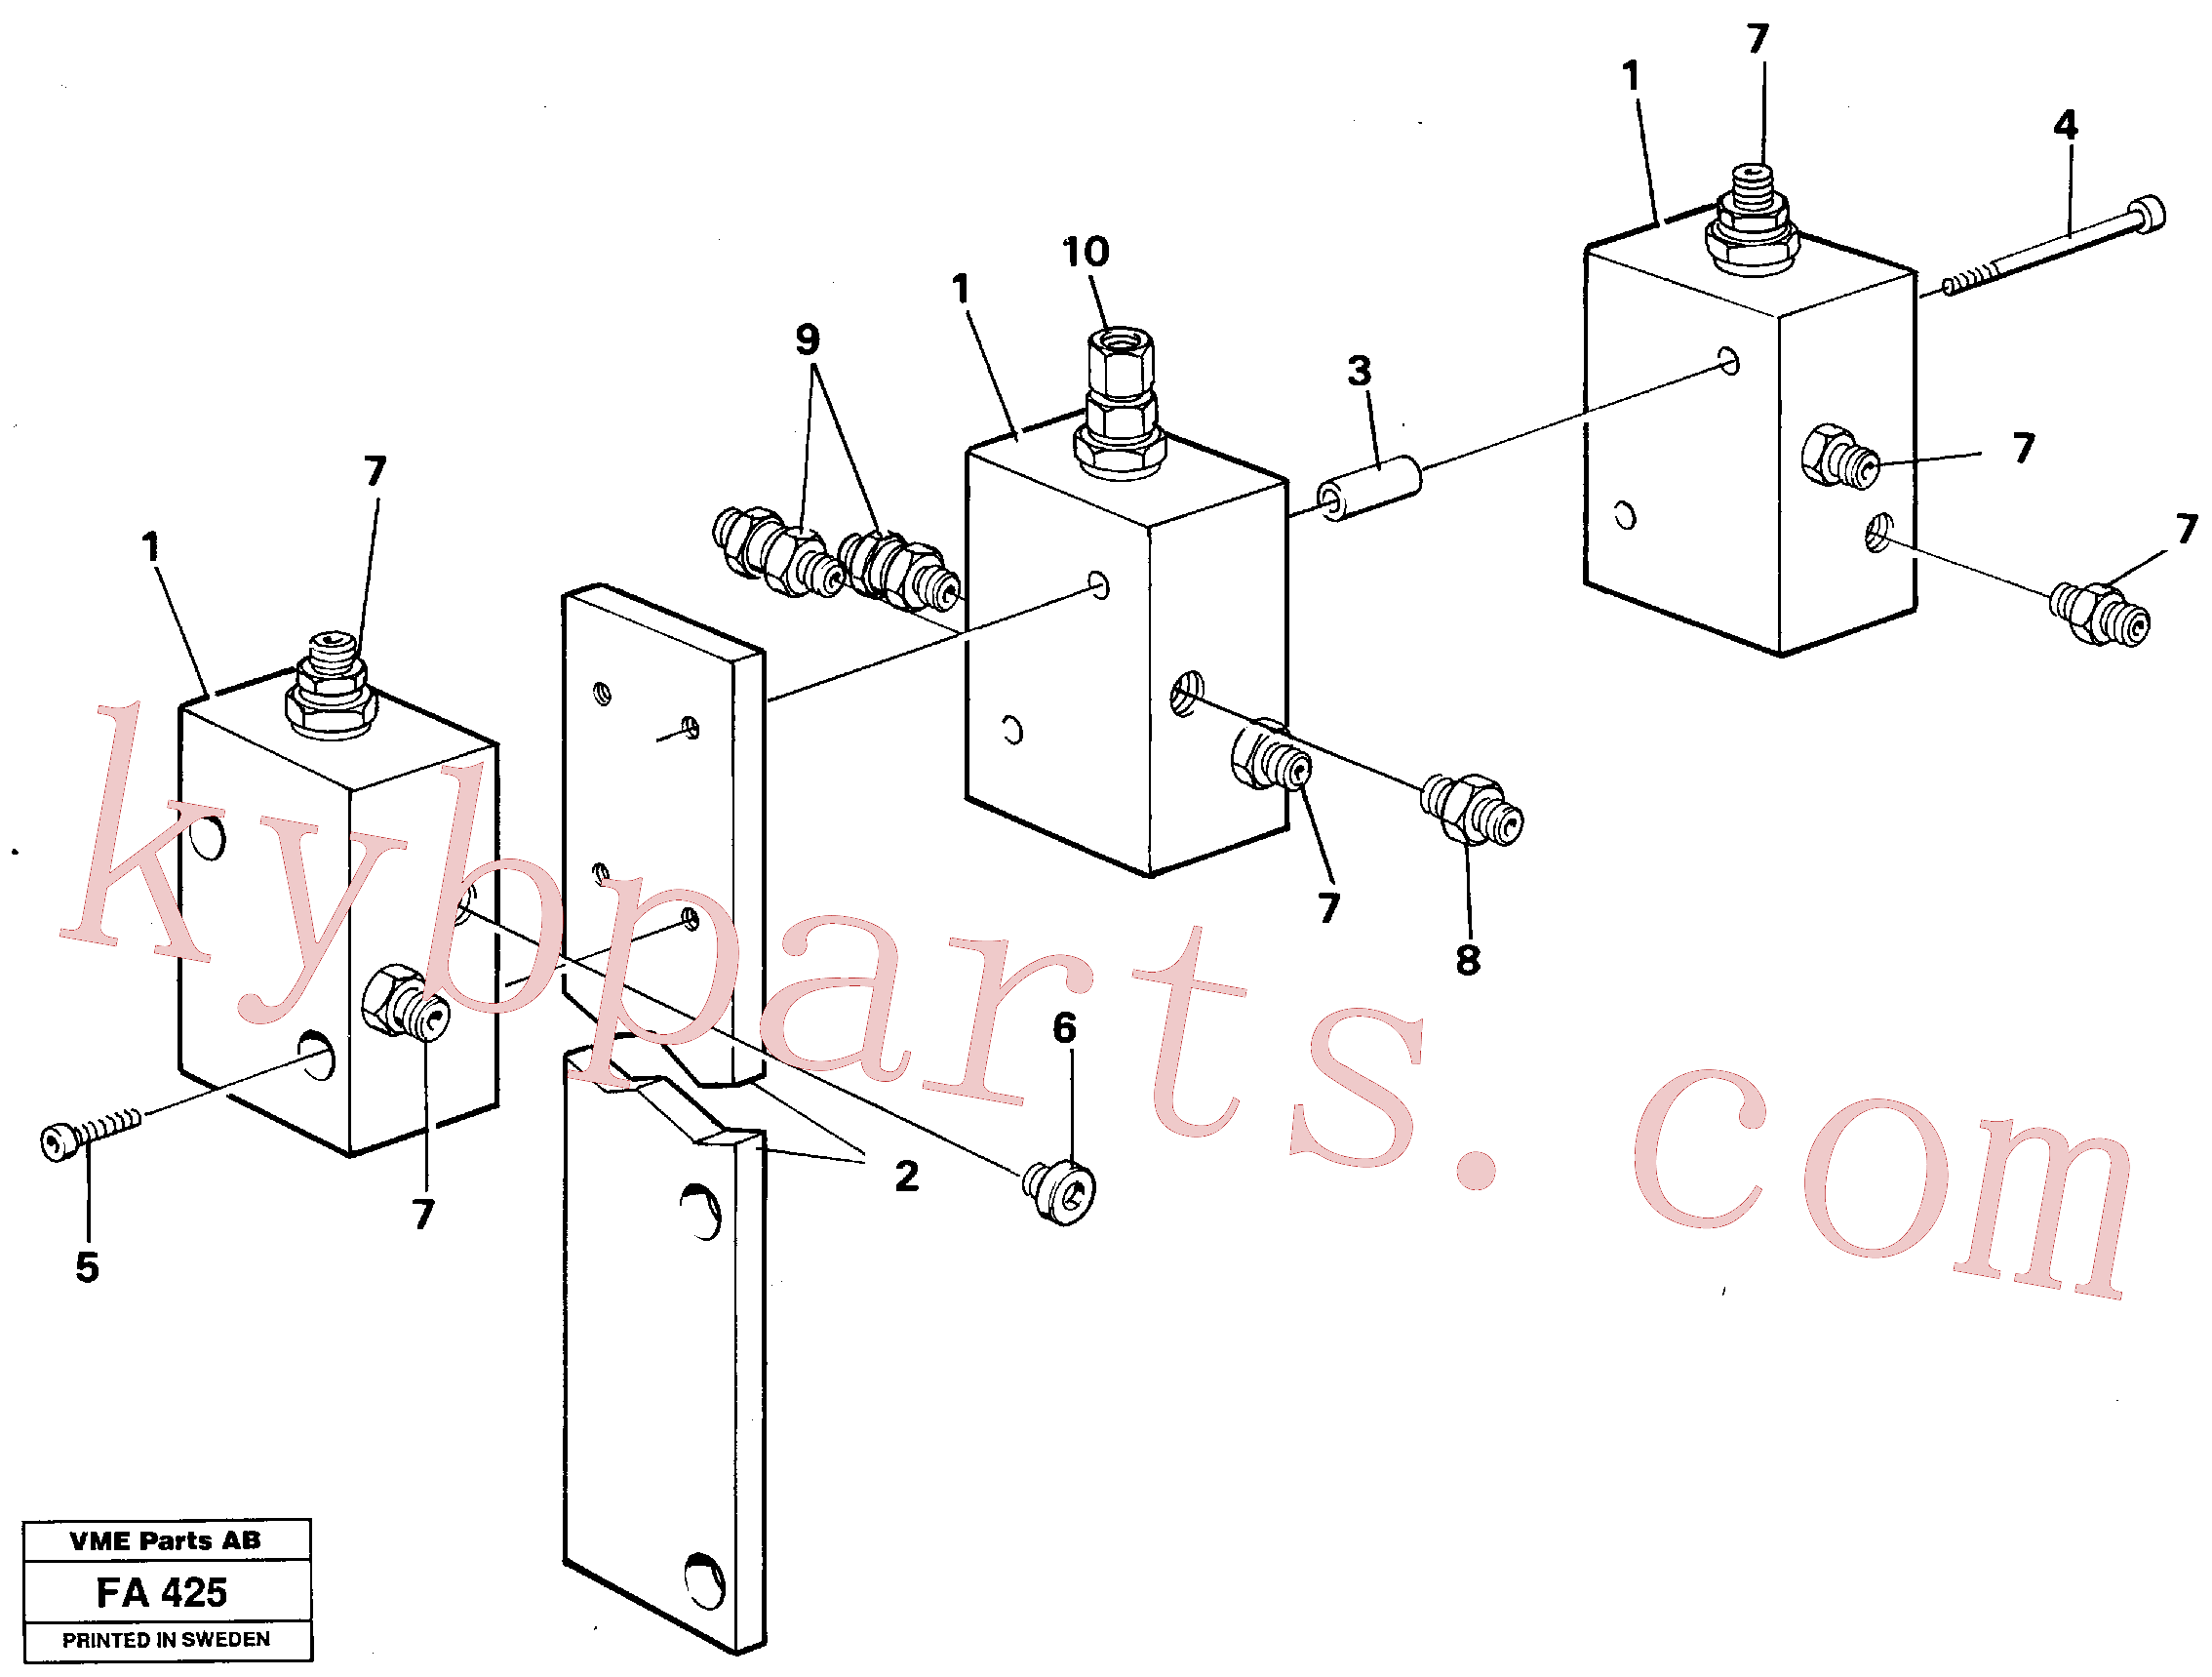 VOE14215718 for Volvo Relay valves(FA425 assembly)